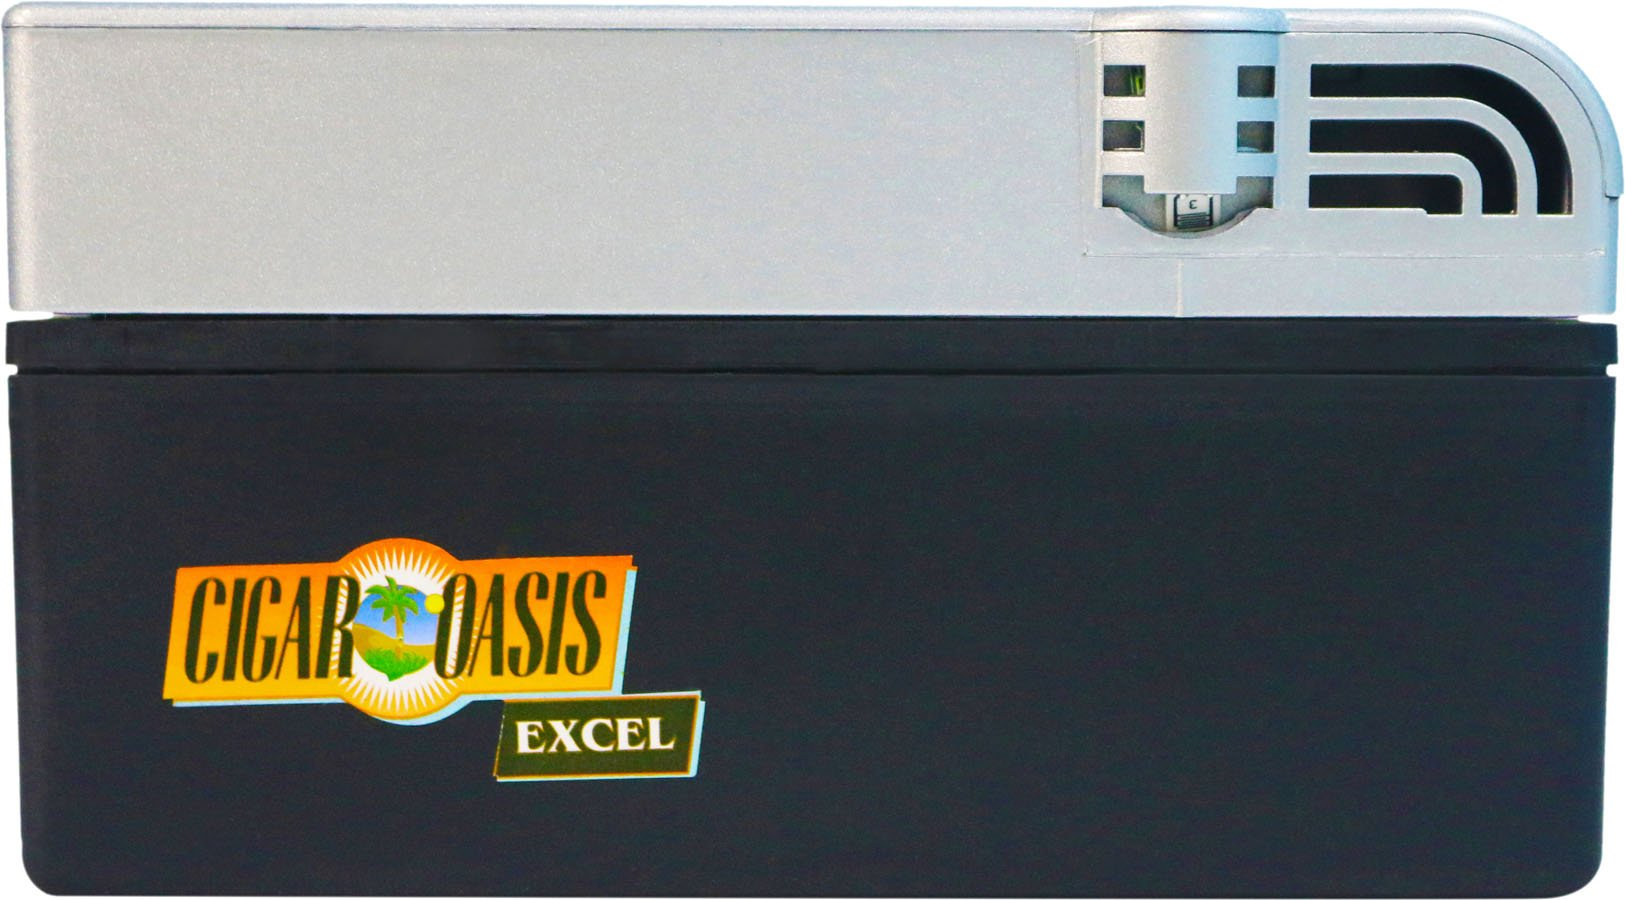 New Cigar Oasis Excel Electronic Humidifier For Larger Humidors Up To 300 Cigars